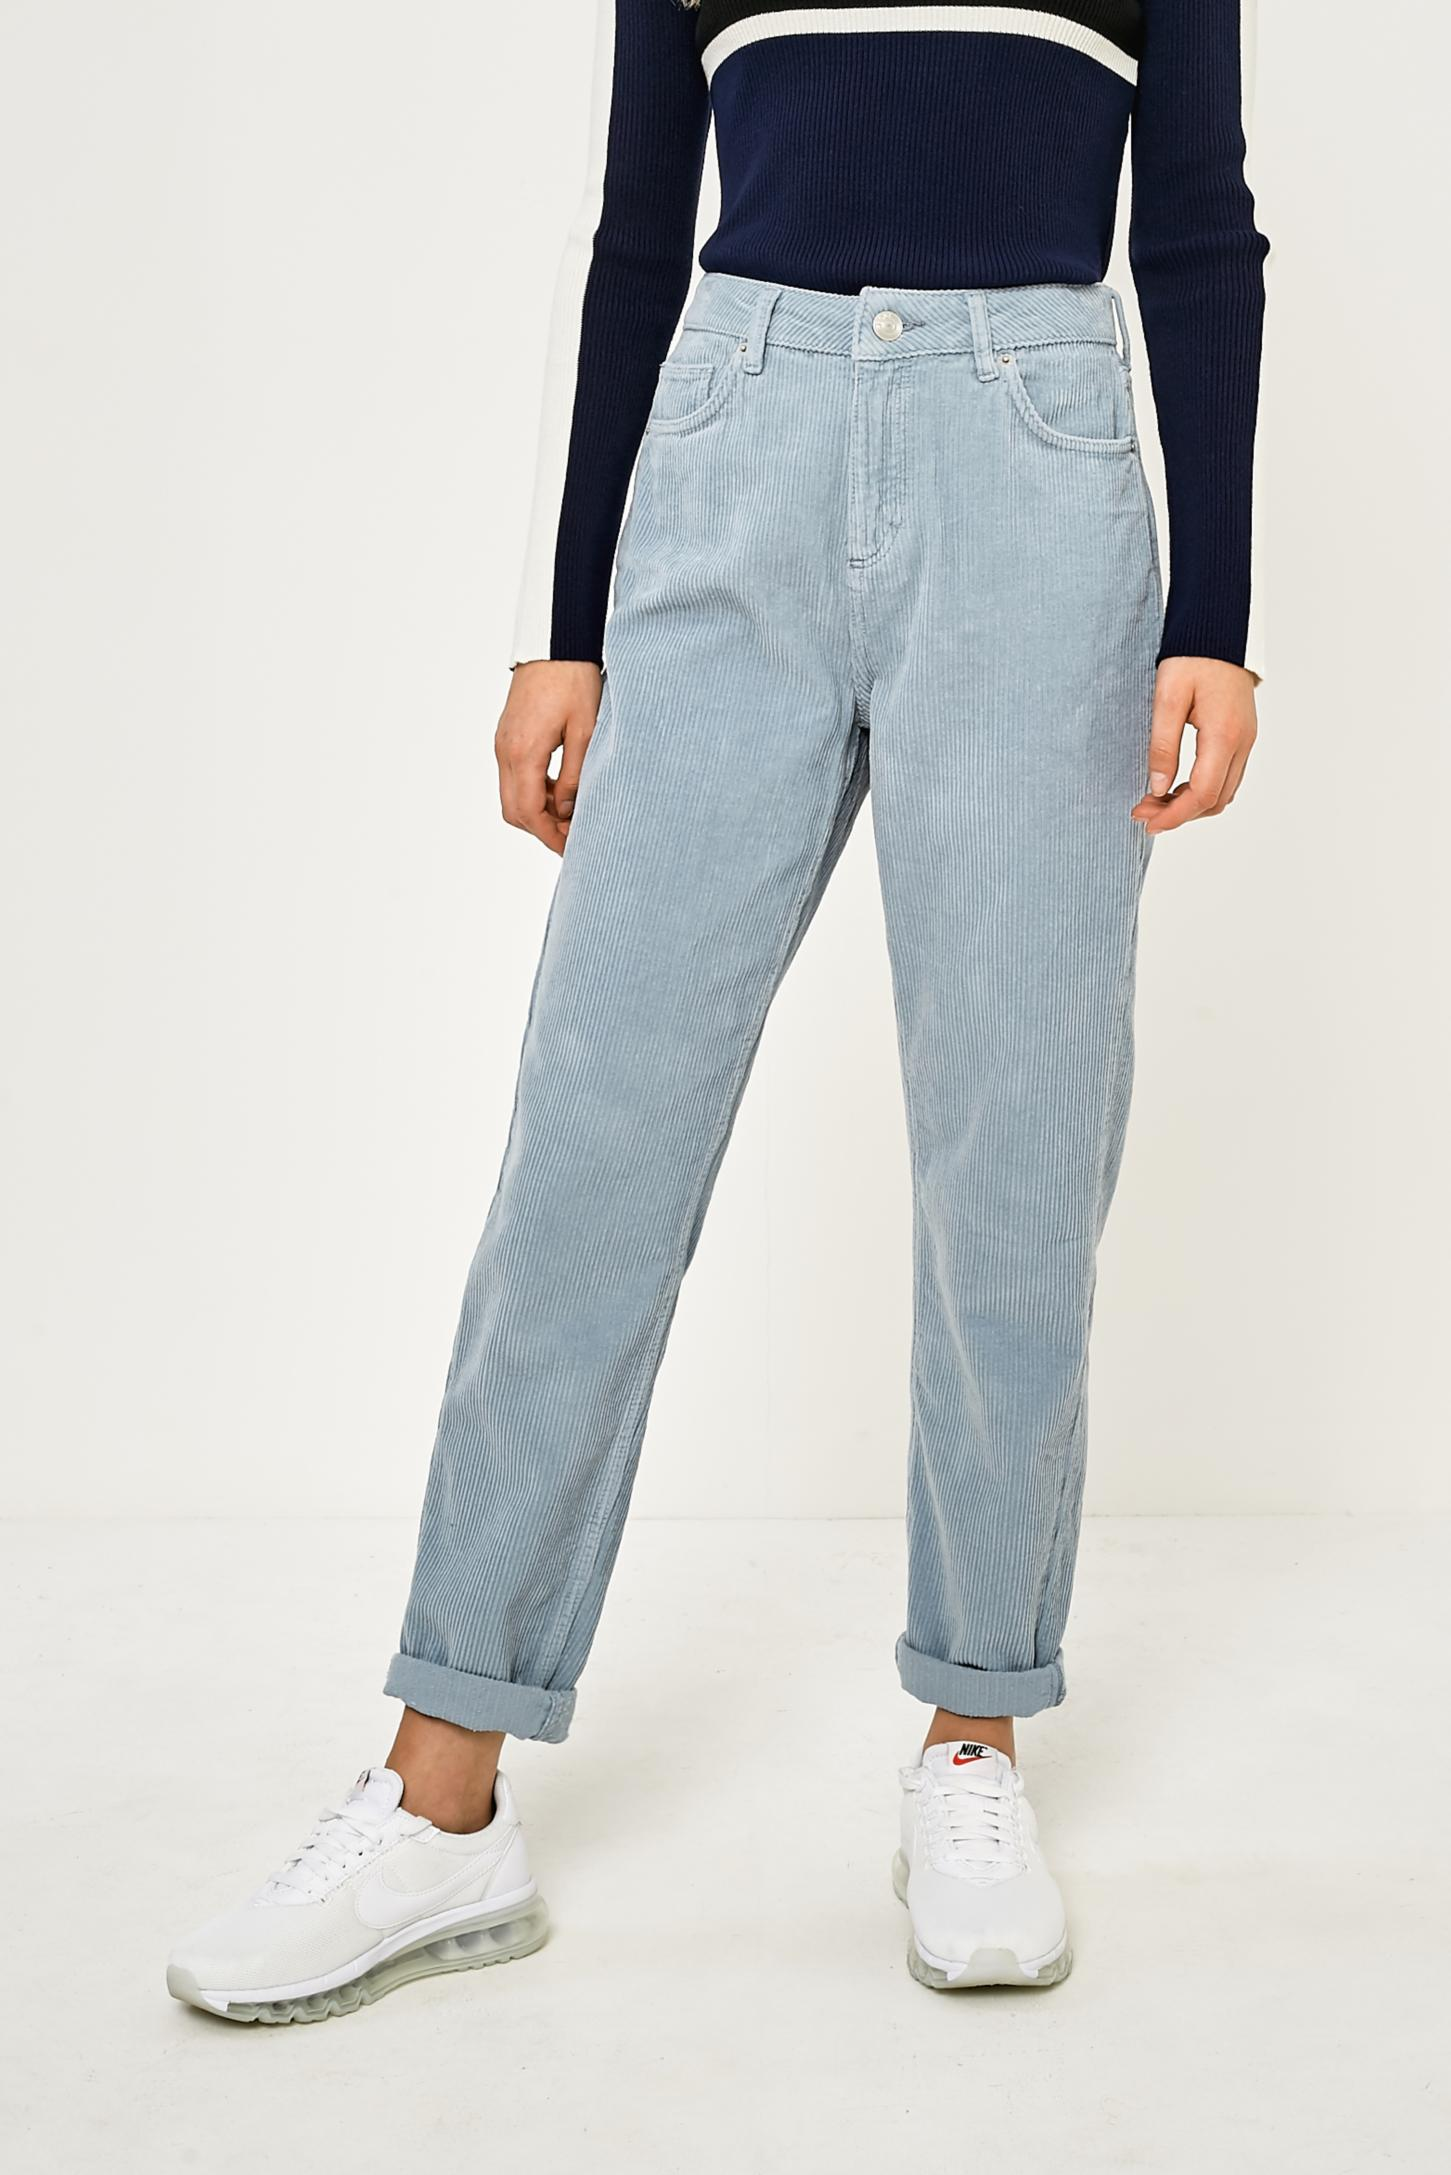 bdg mom sky blue corduroy jeans urban outfitters